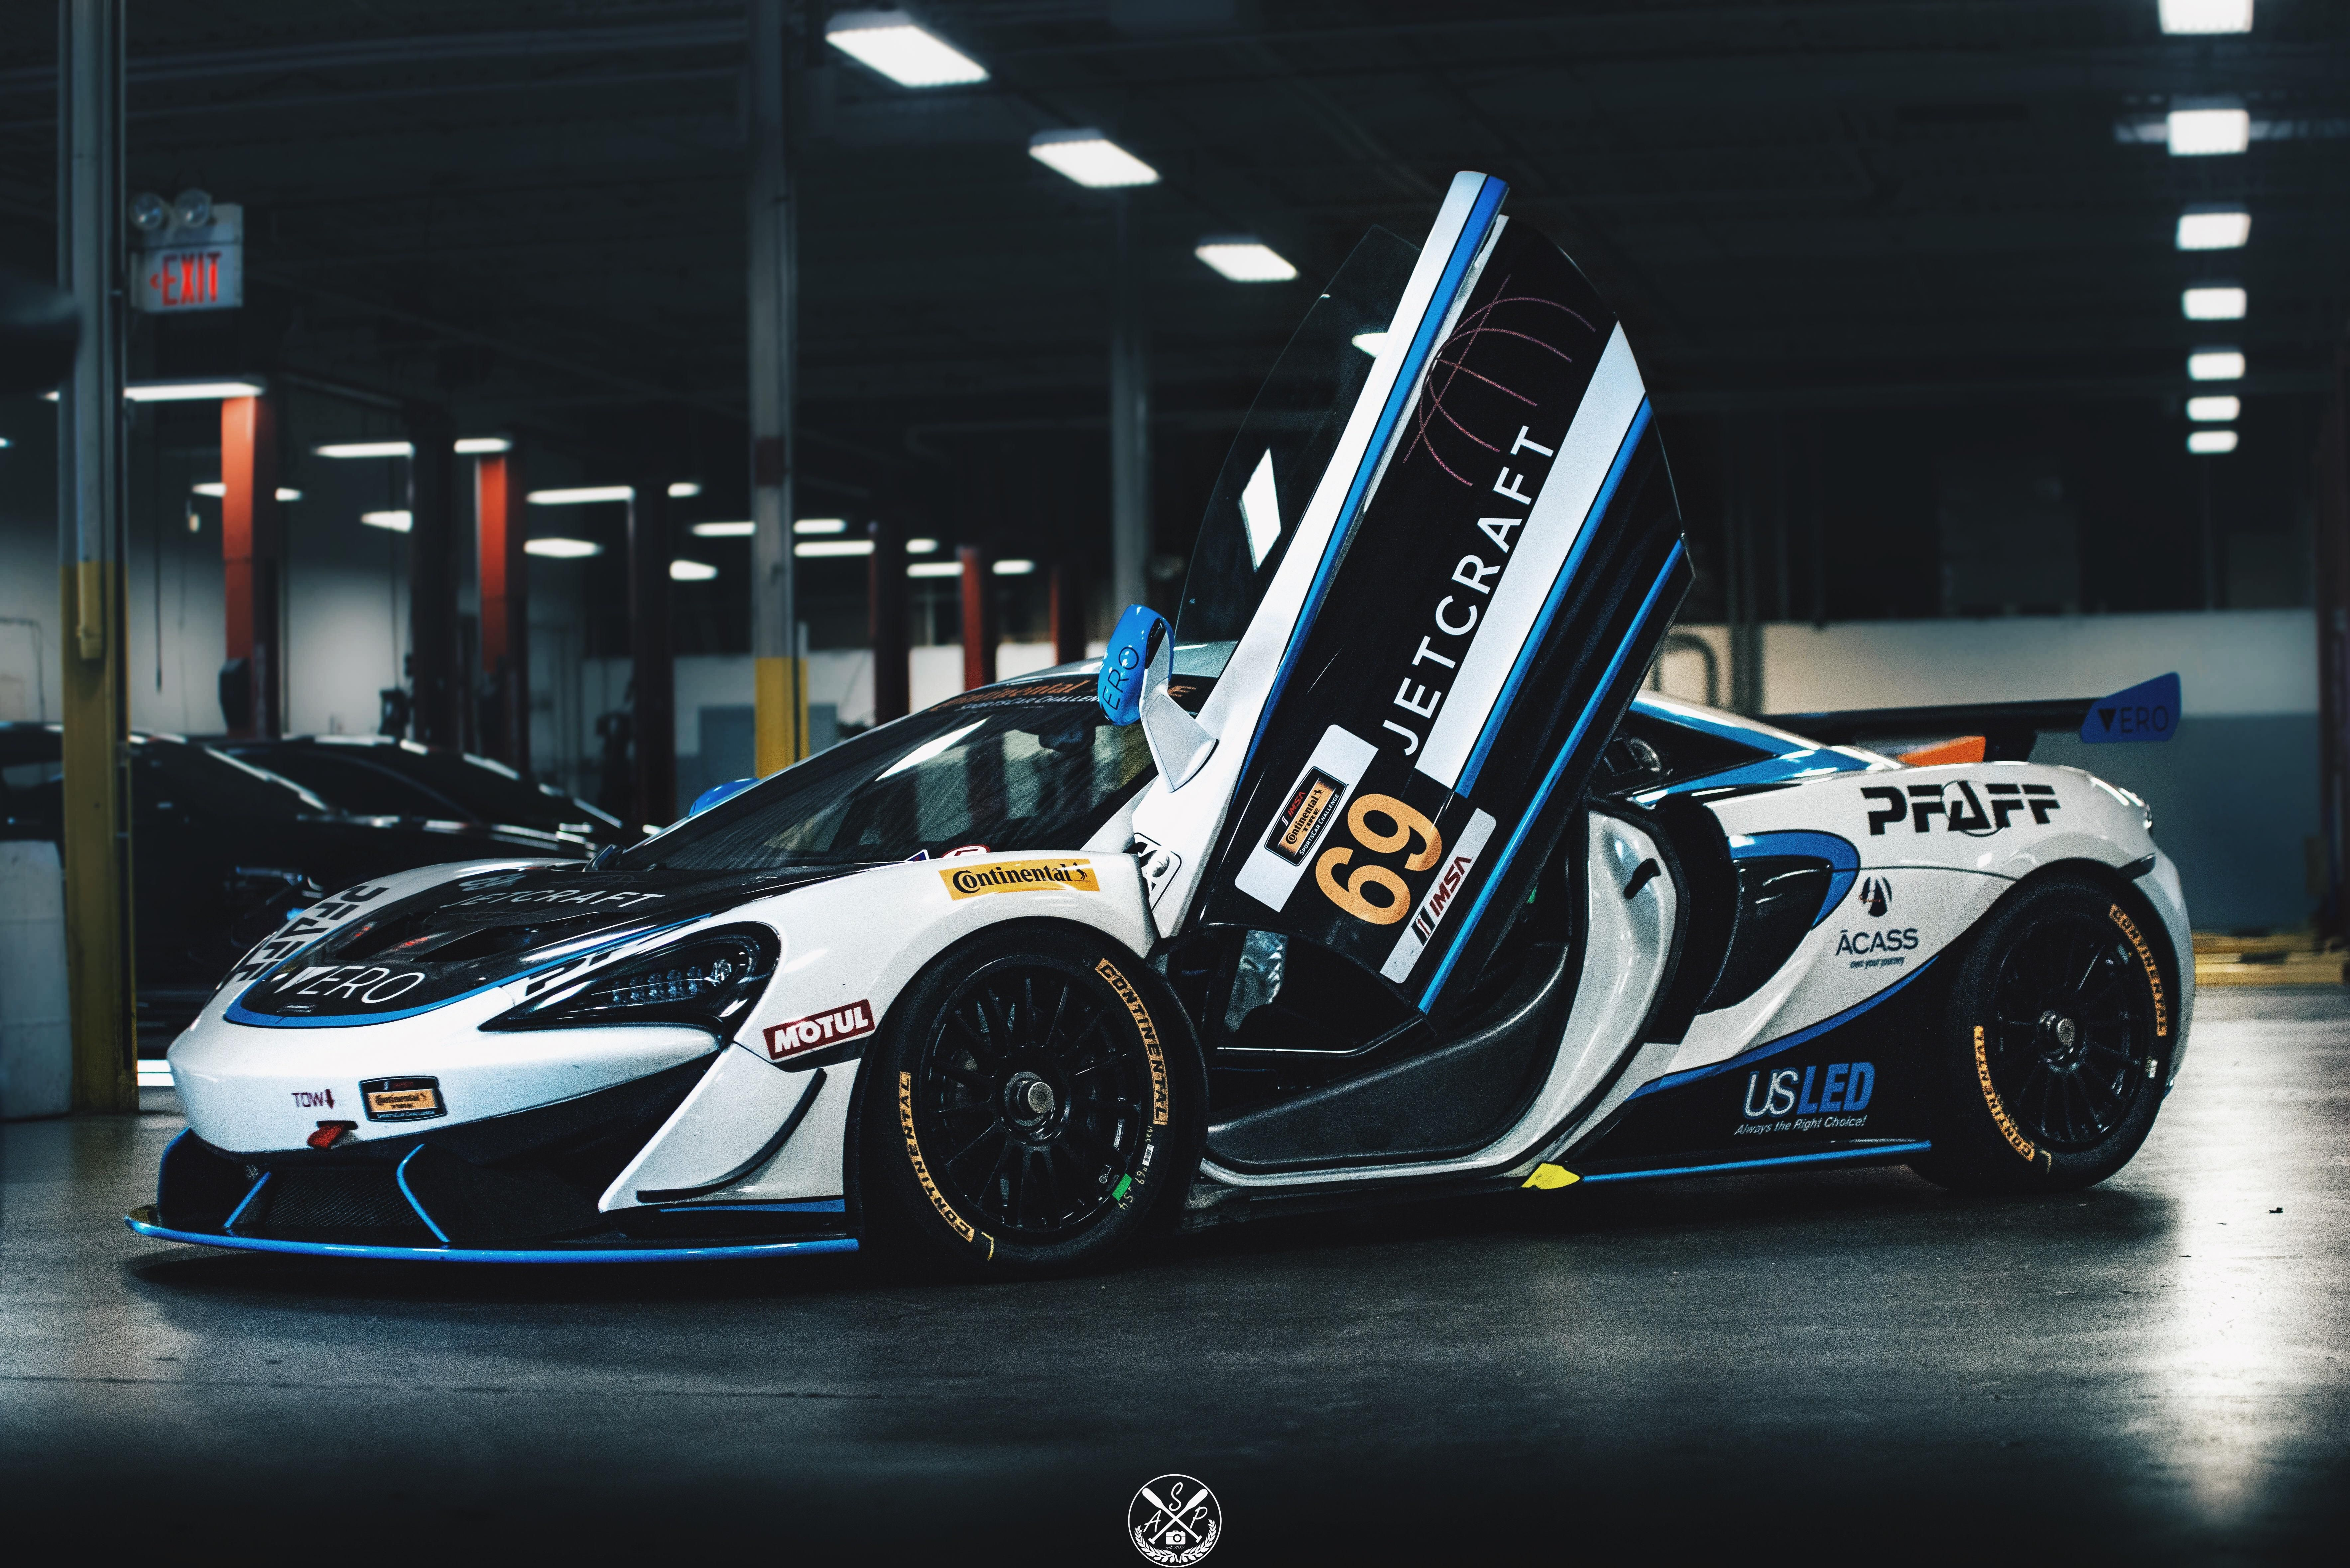 McLaren 570s GT4 [7360x4912] Top cars, Car wallpapers